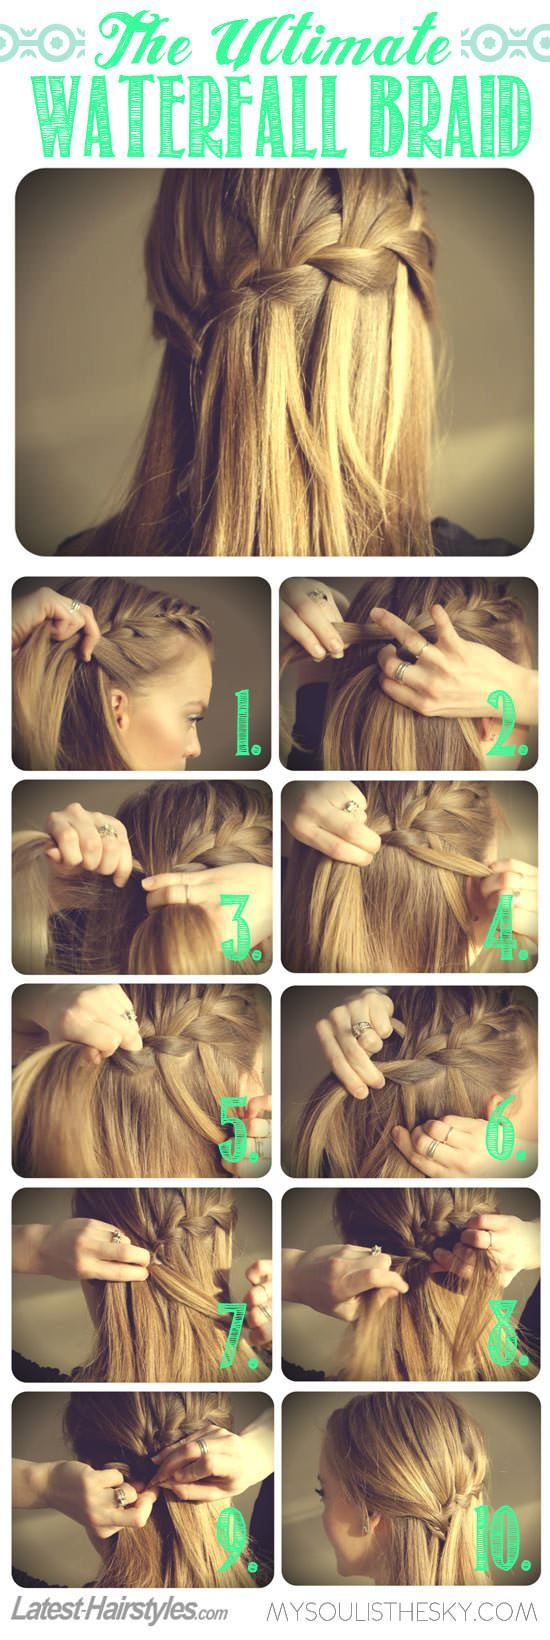 Enjoyable 20 Gorgeous Braided Hairstyles You Can Actually Do Yourself Hairstyles For Women Draintrainus